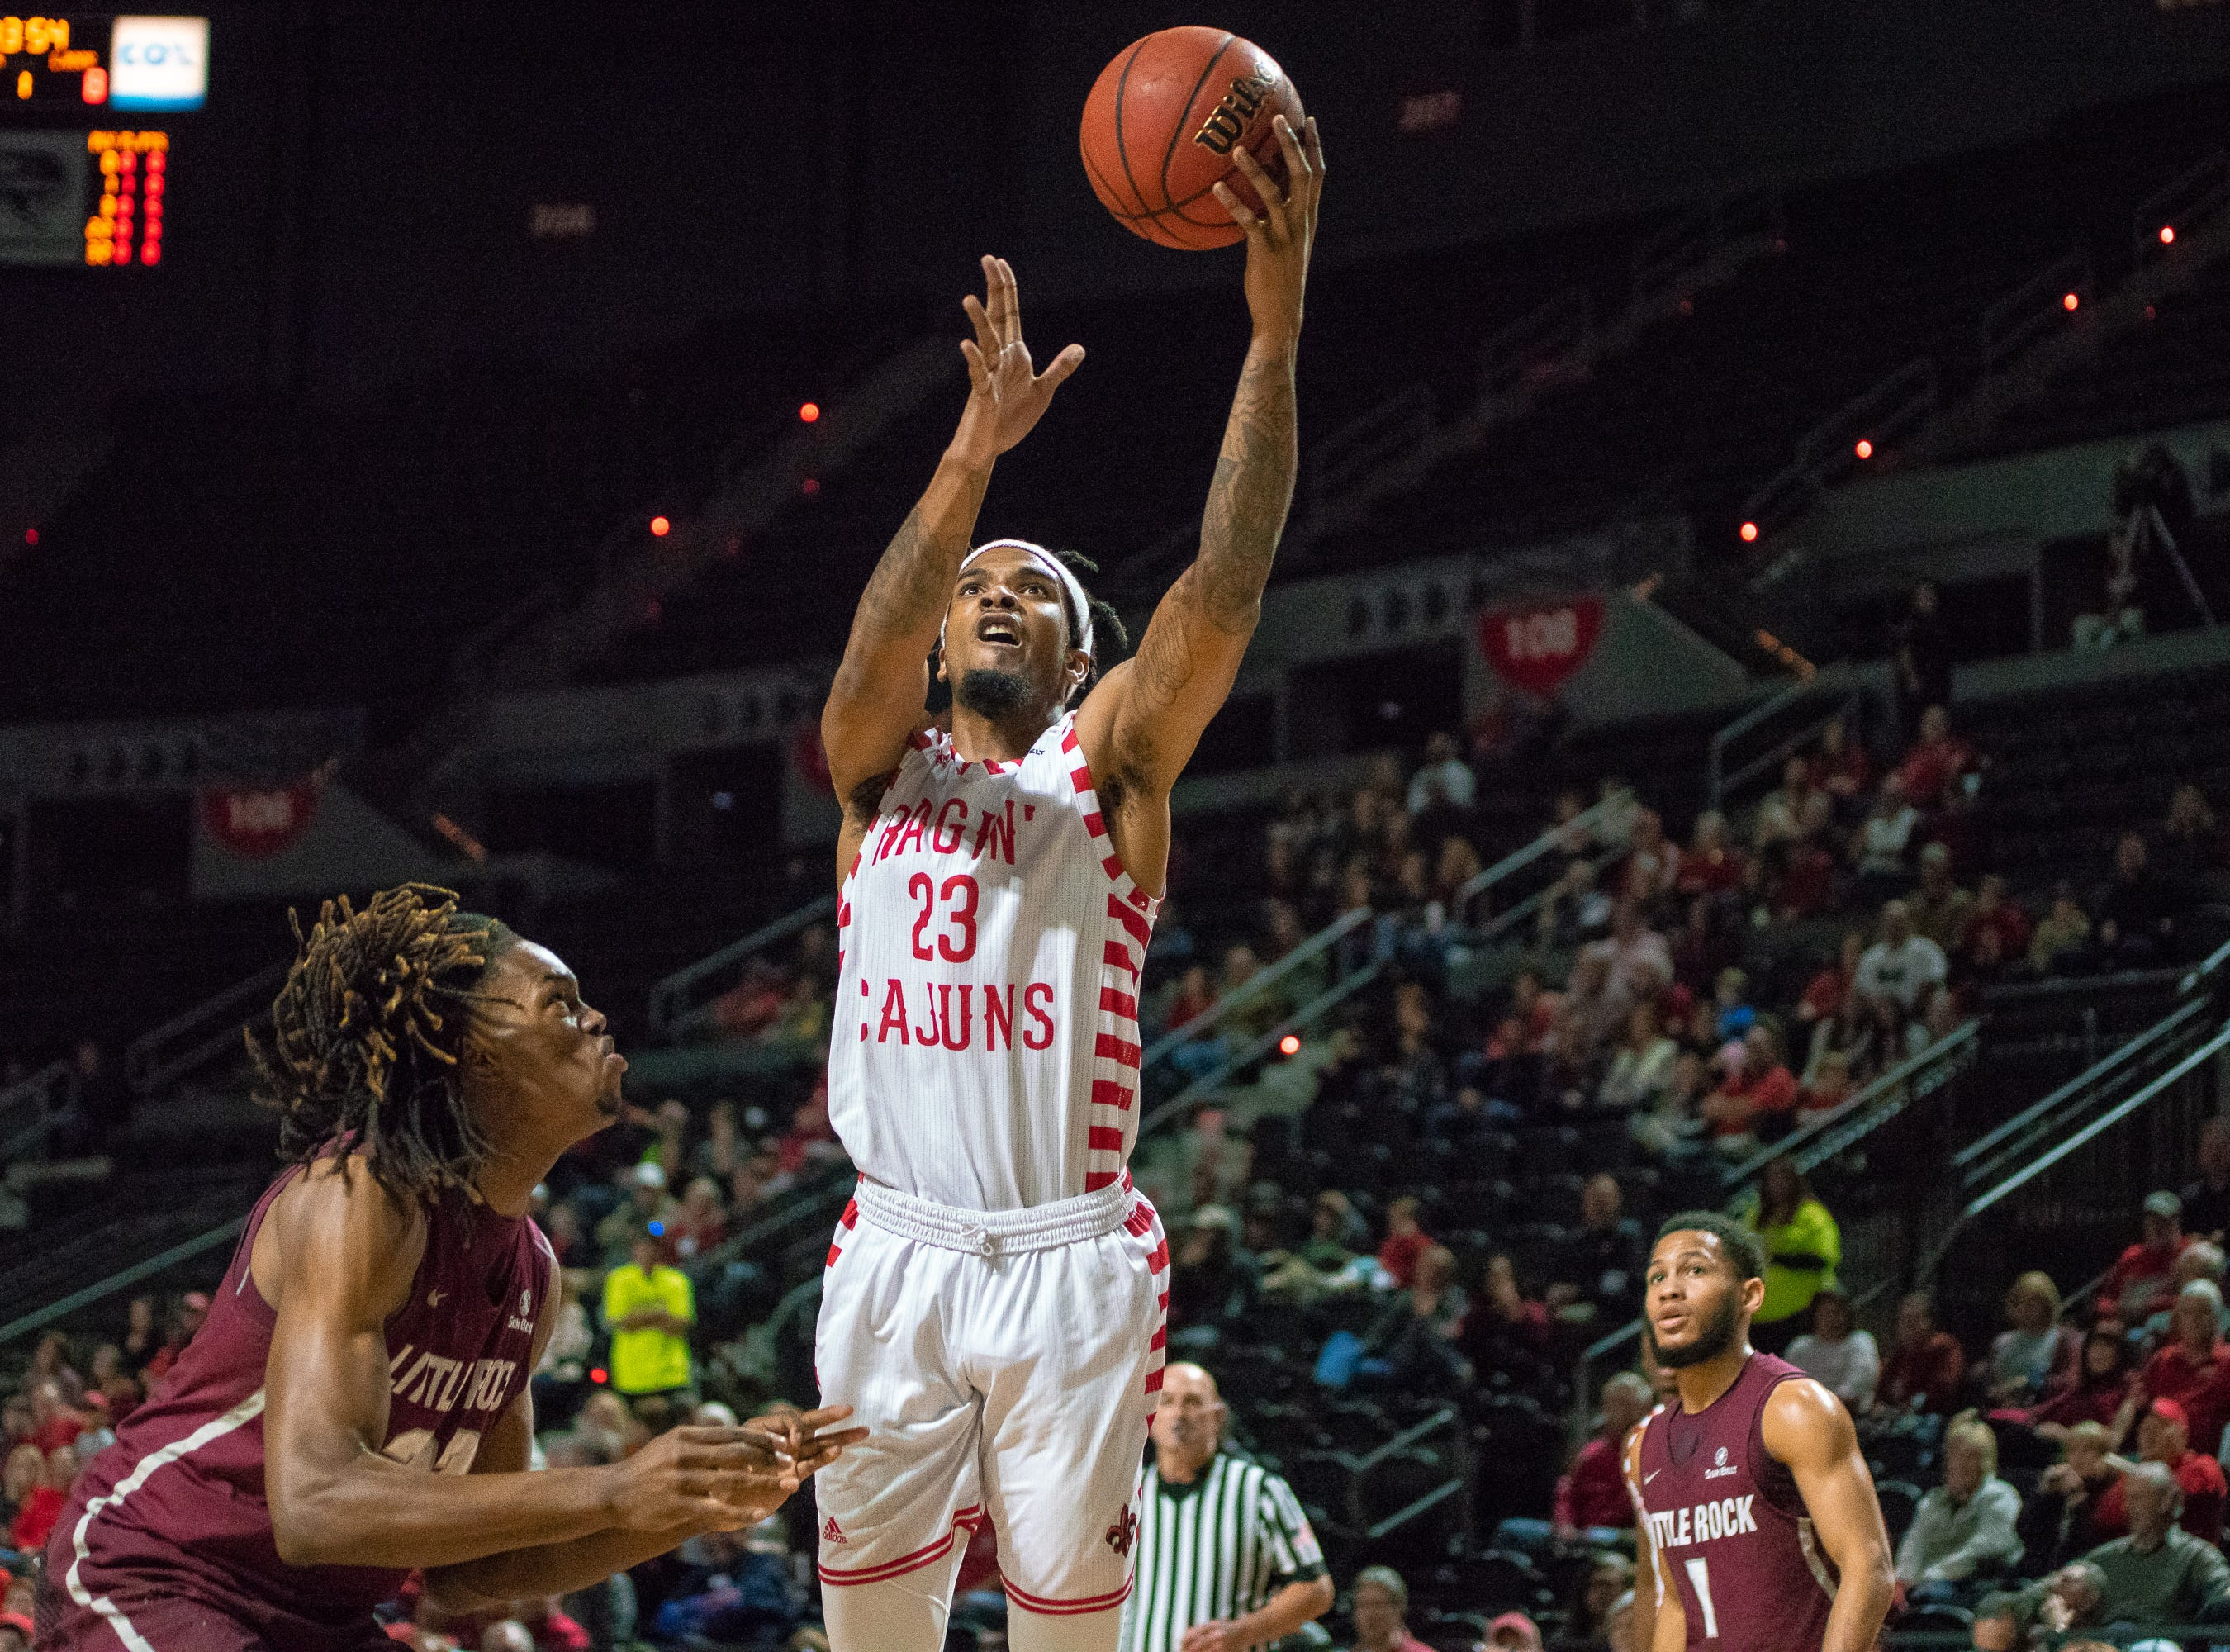 UL's Jakeenan Gant goes up to the goal to score a layup as the Ragin' Cajuns take on the Little Rock Trojans at the Cajundome on January 5, 2019.